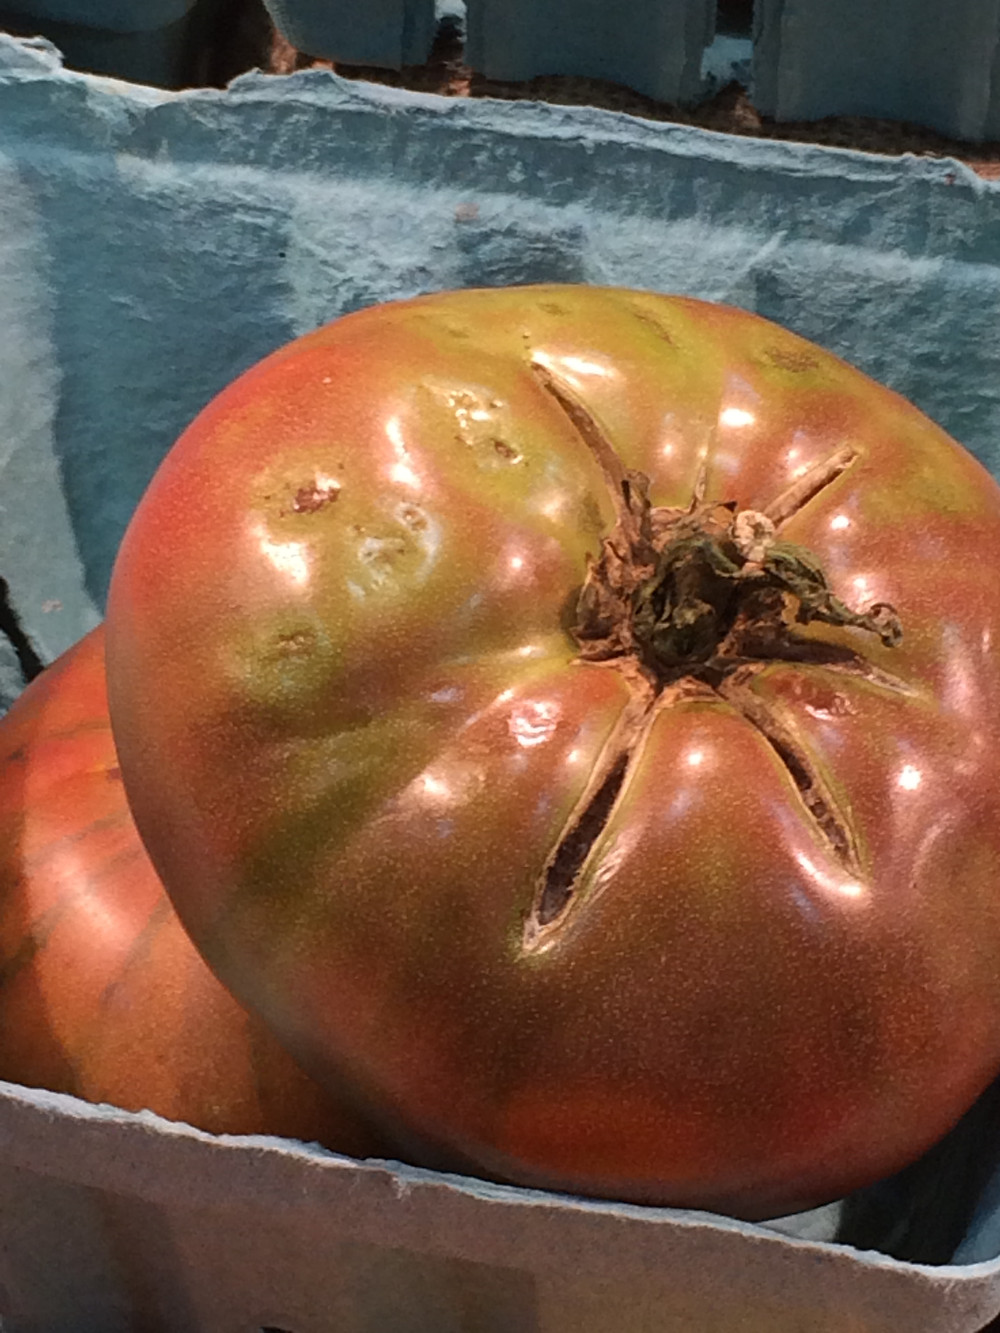 This tomato's skin cracked after its inside grew faster than its outside could keep up with.